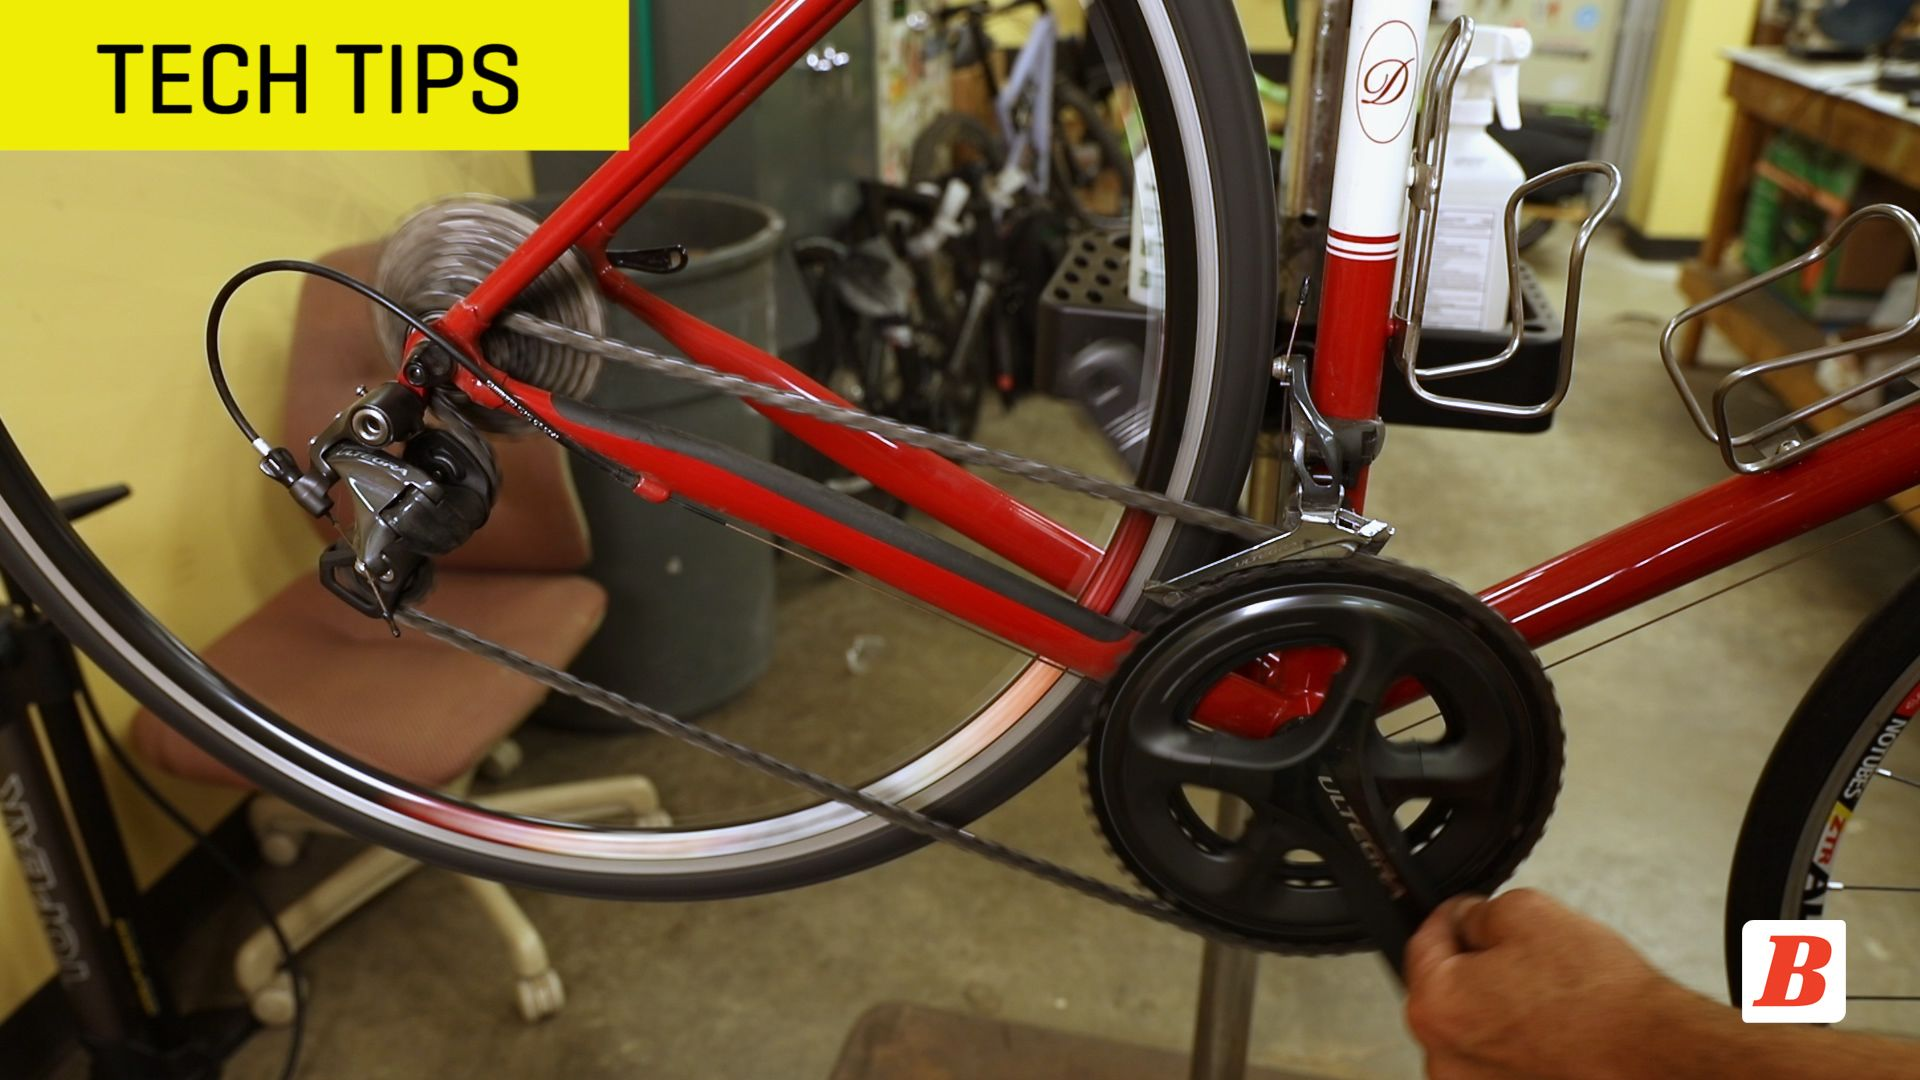 Replace Your Bike's Shifter Cables in 9 Simple Steps | Bicycling